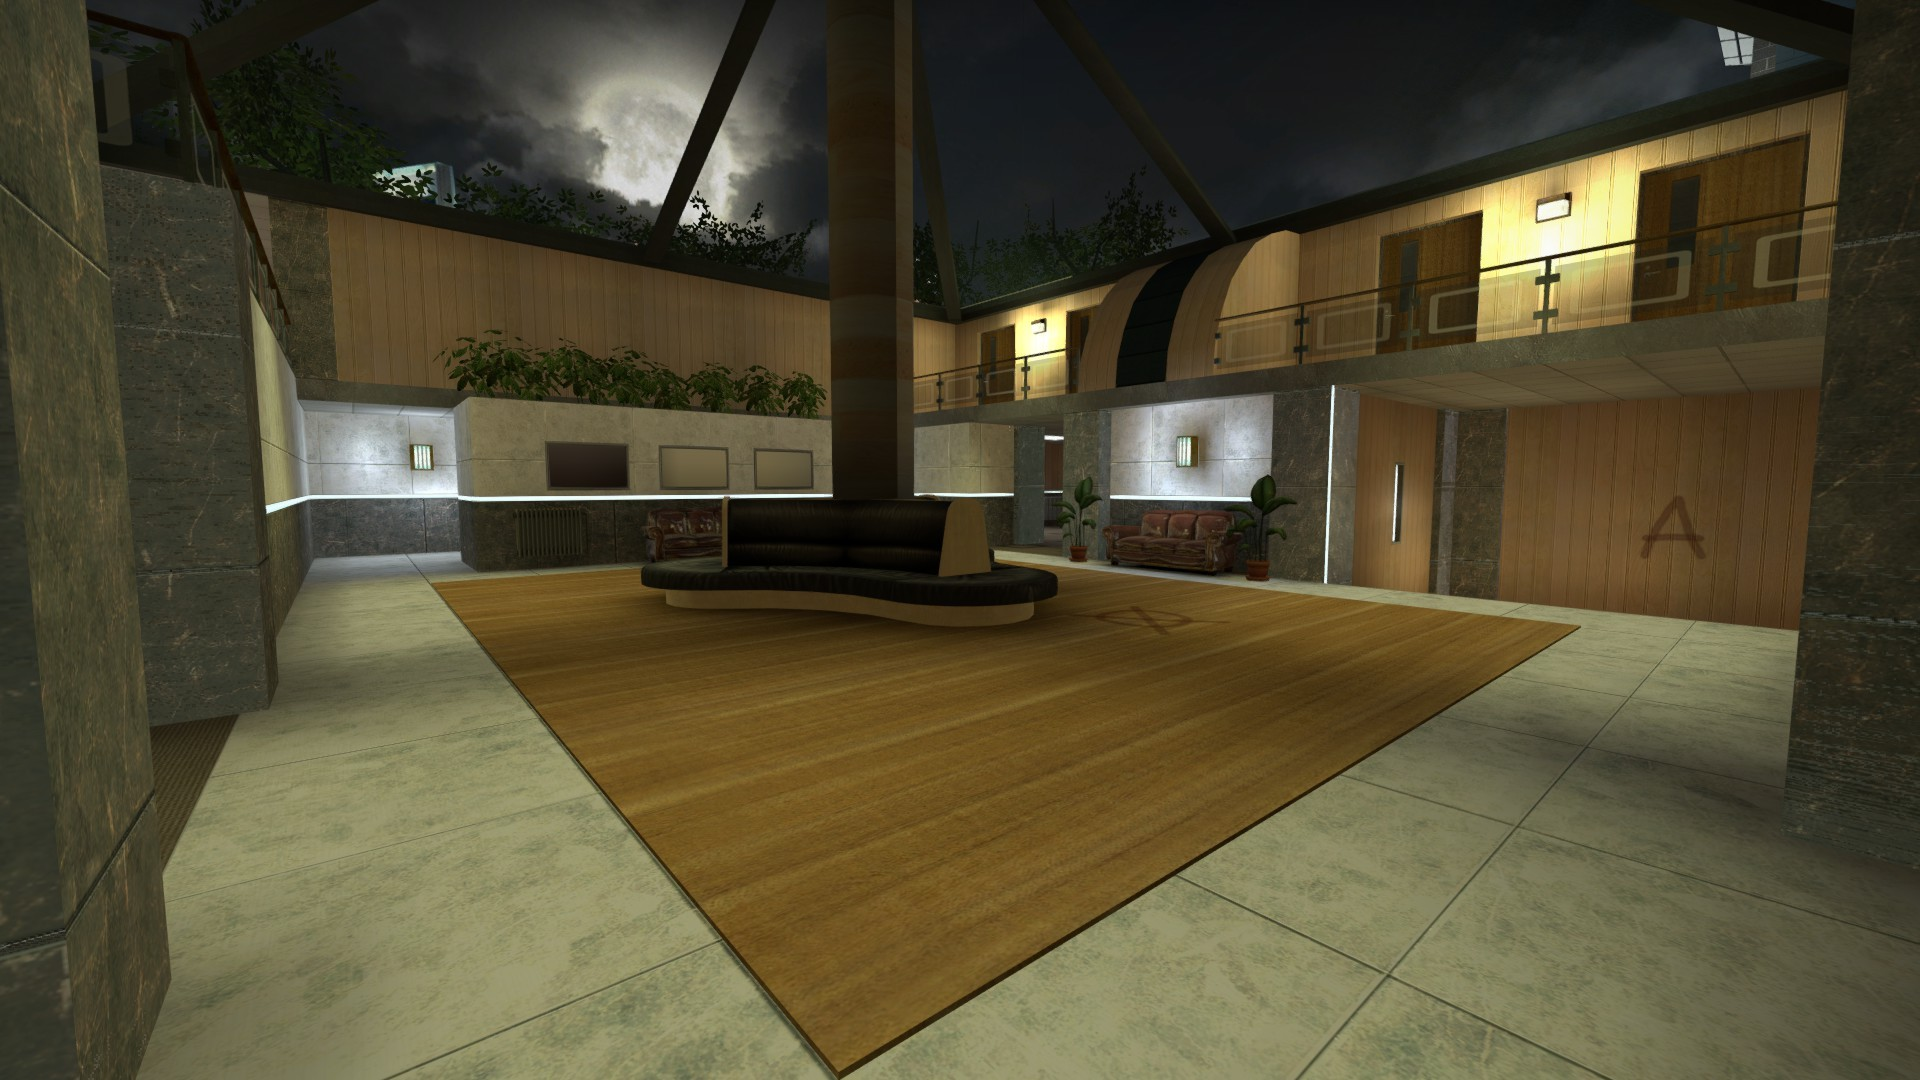 Counter-Strike: Global Offensive Map - de_nightfever_beta screenshot 2